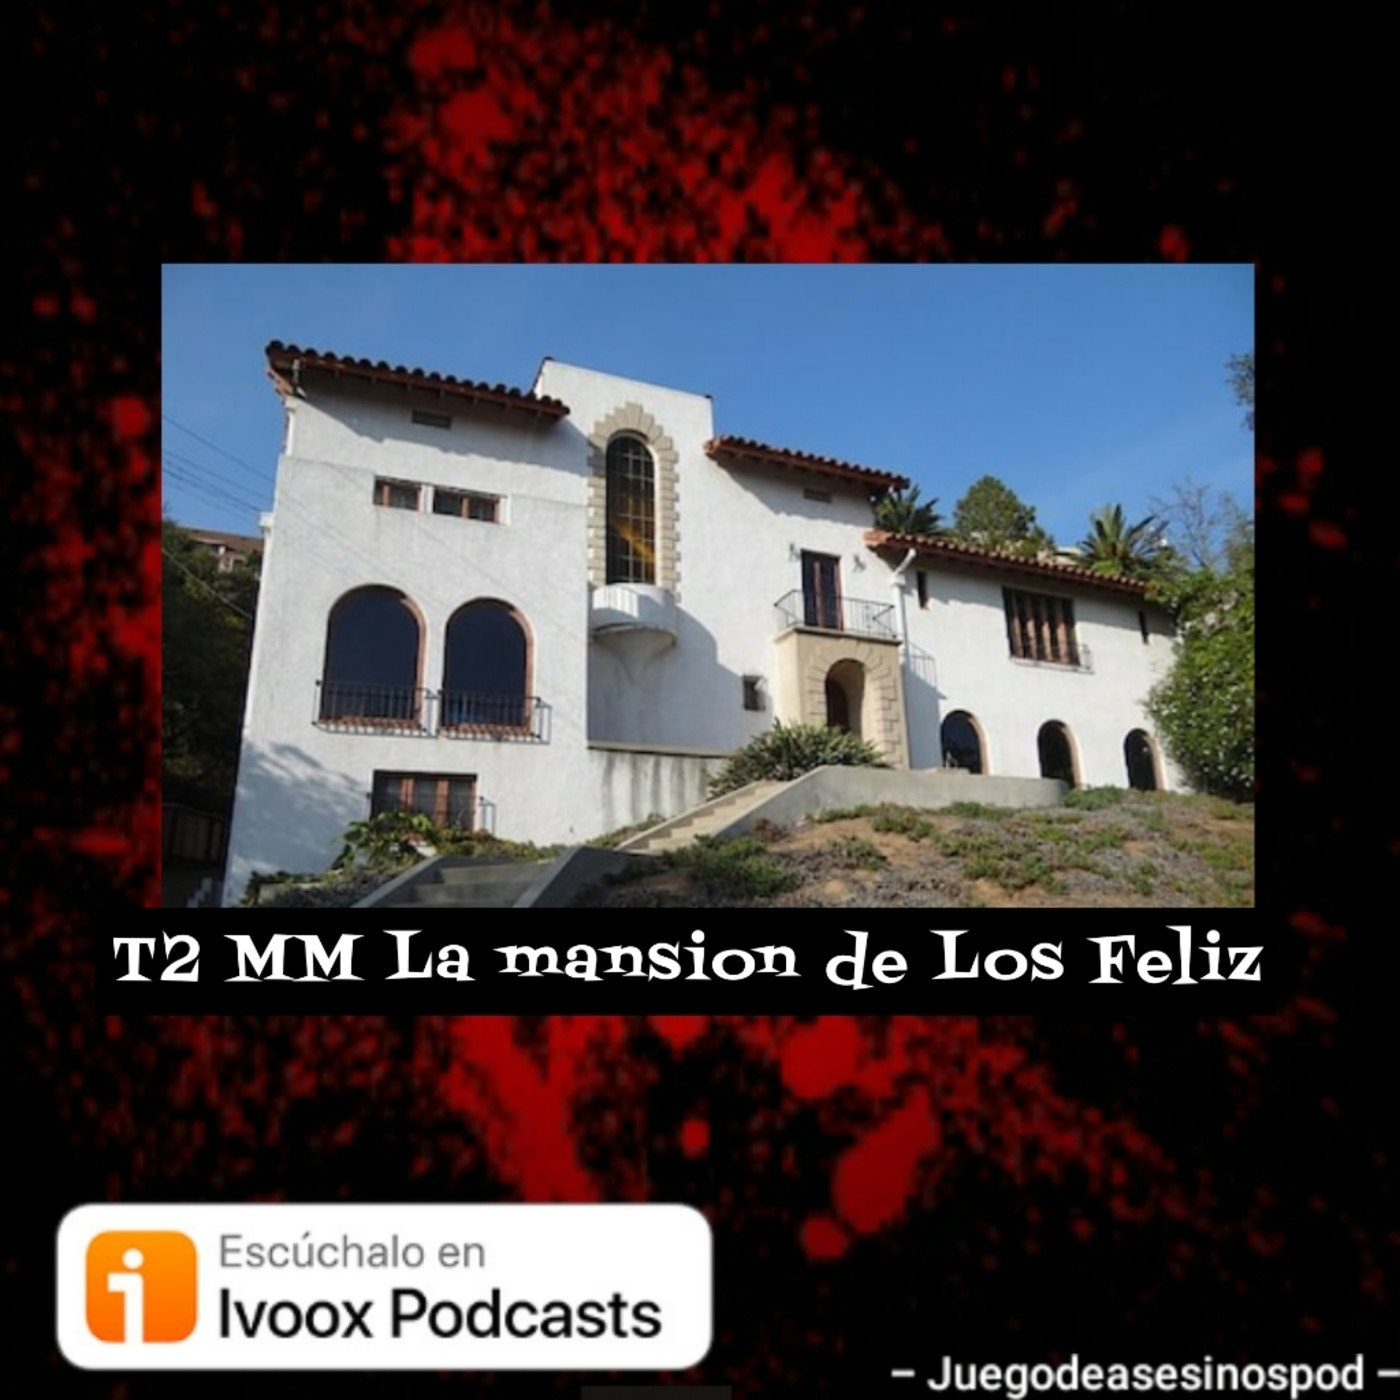 T2 MM La mansion de Los Feliz